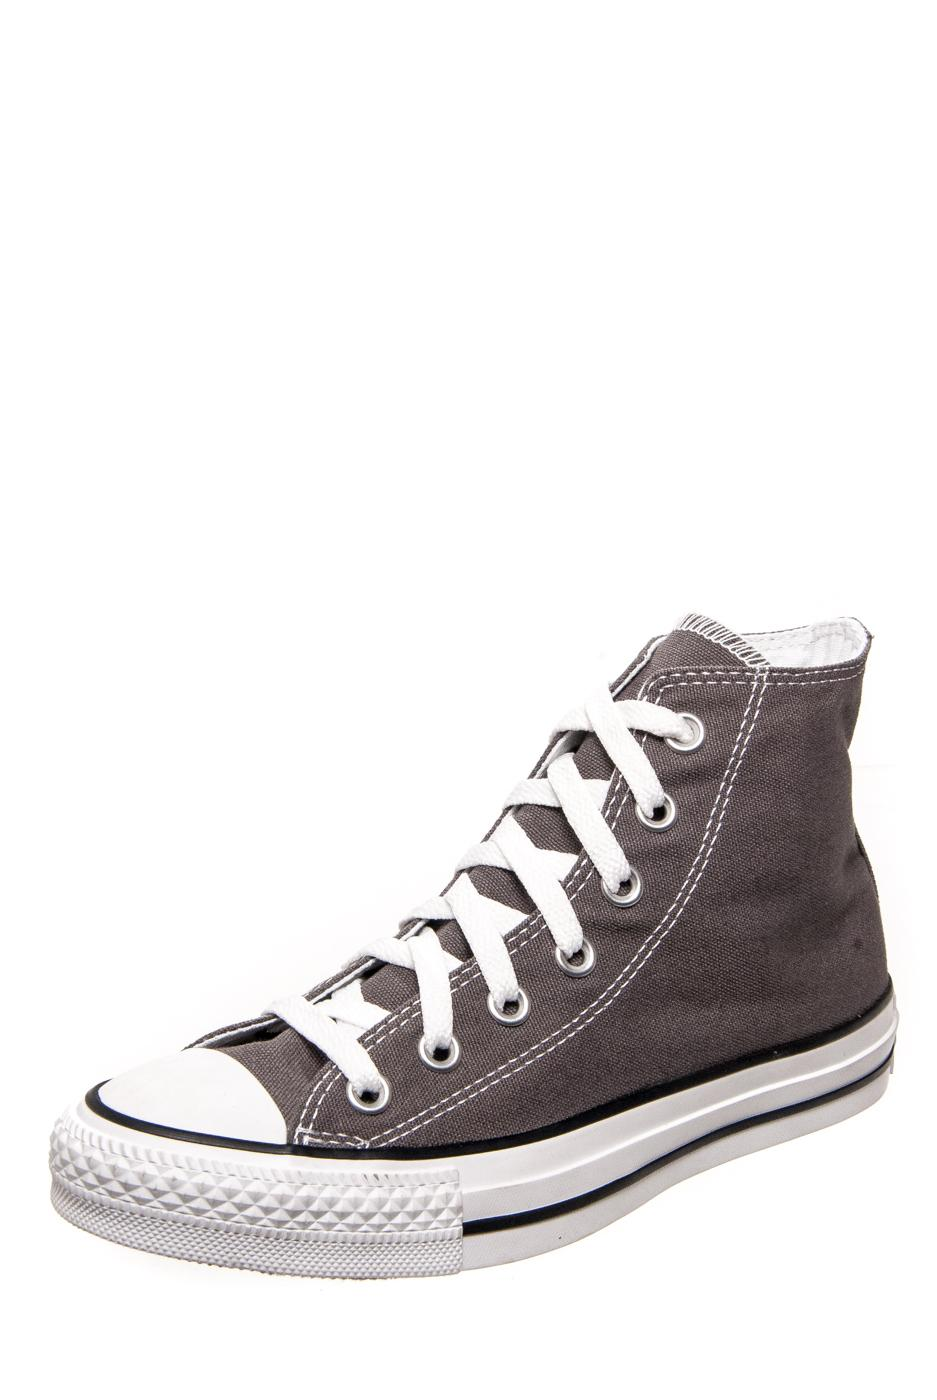 star chuck taylor classic sneaker